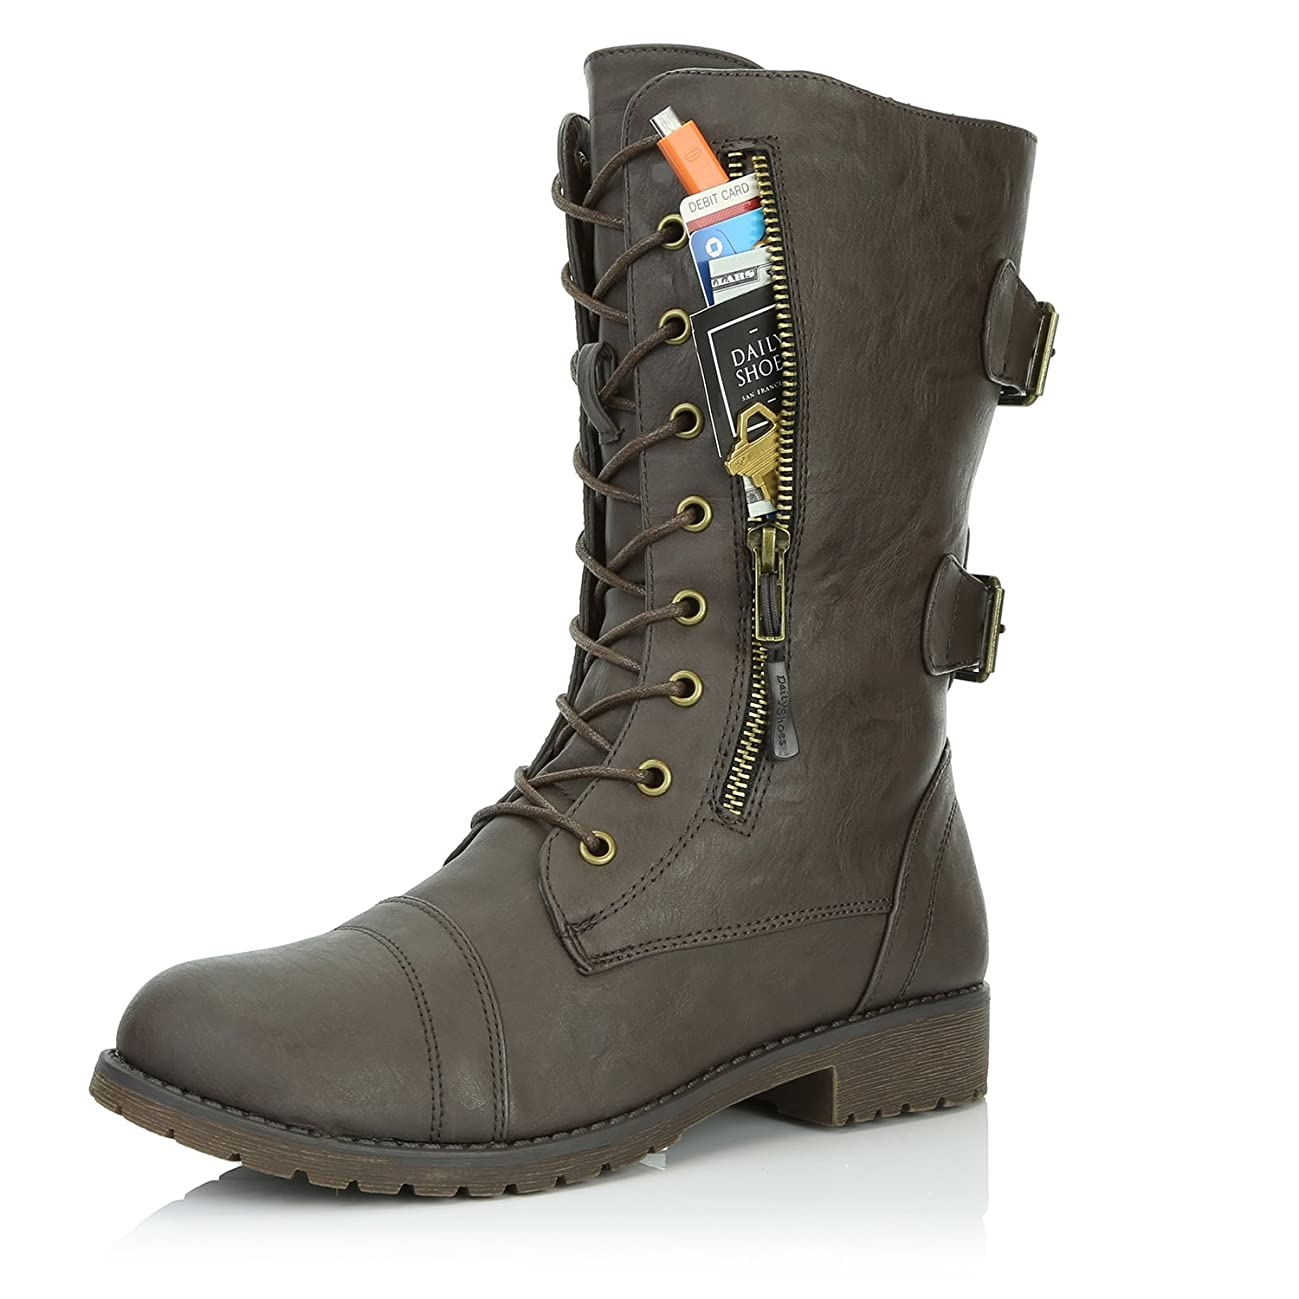 DailyShoes Women's Military Lace Up Buckle Combat Boots Mid Knee High Exclusive Credit Card Pocket, Brown Pu, 5.5 B(M)